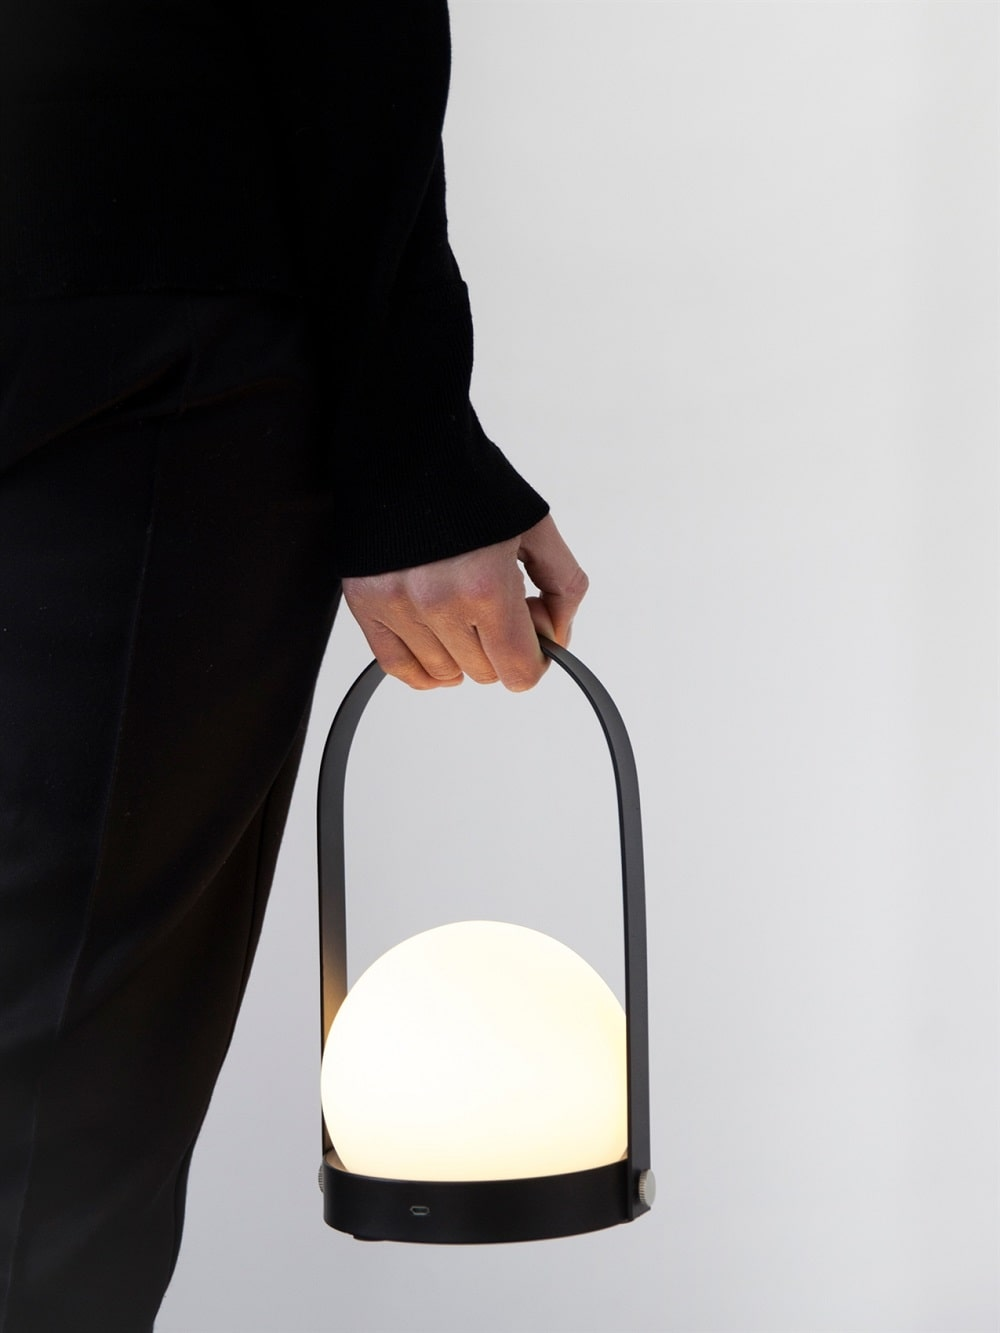 Carrie Led Lamp Designed By Norm Architects Design Visual In 2020 Led Lamp Design Lamp Design Led Lamp